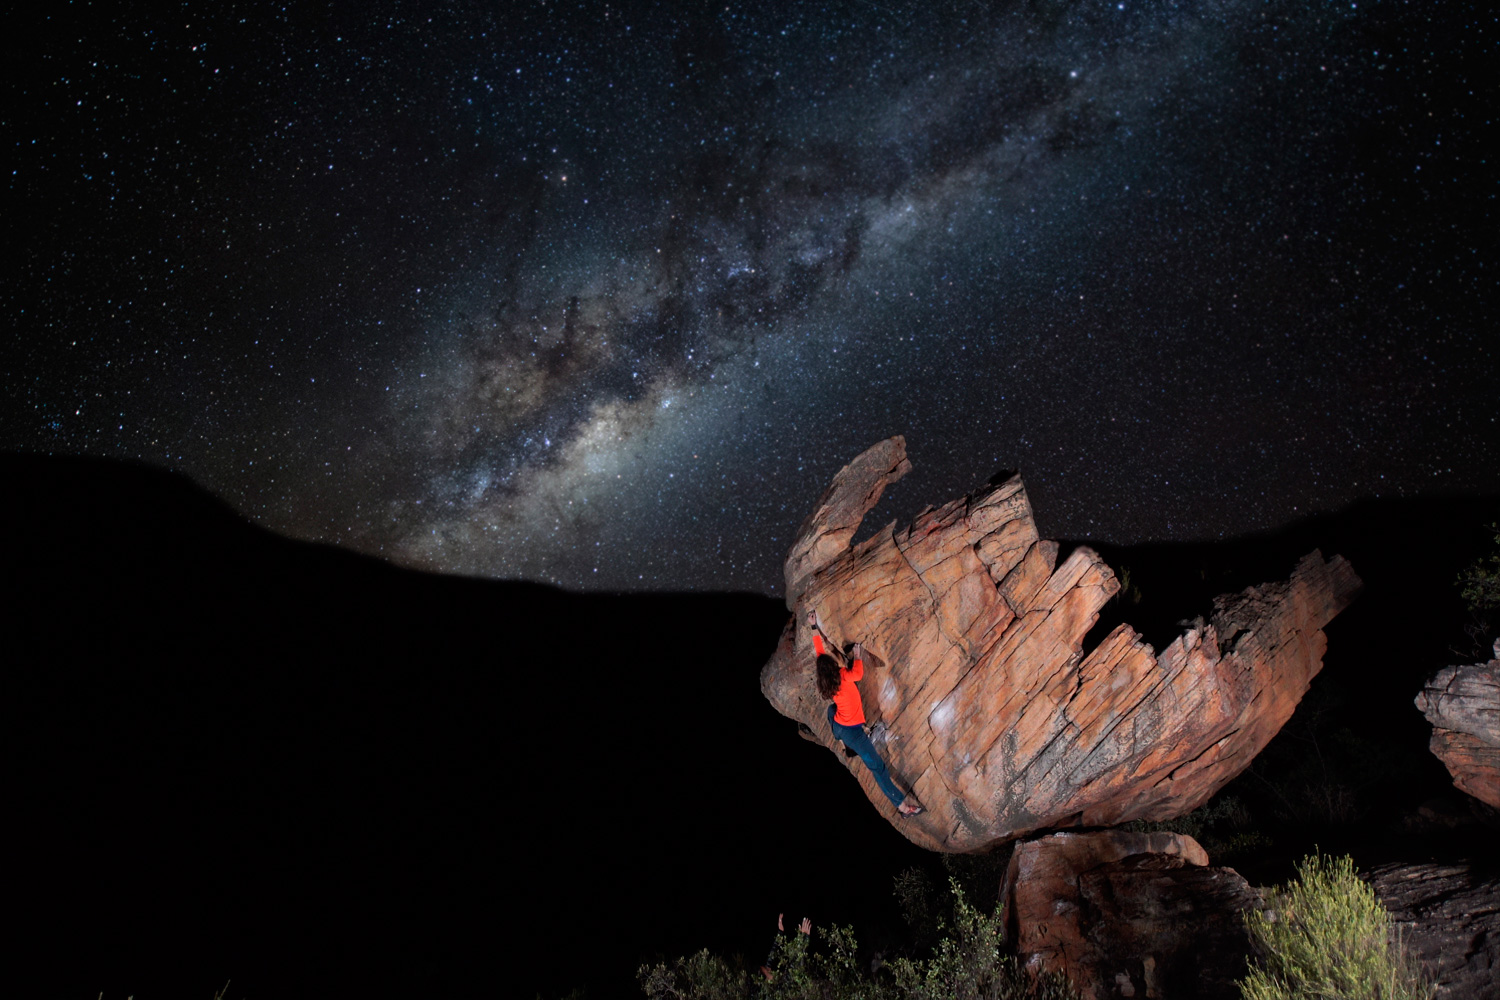 climber in front of the milky way in the night sky